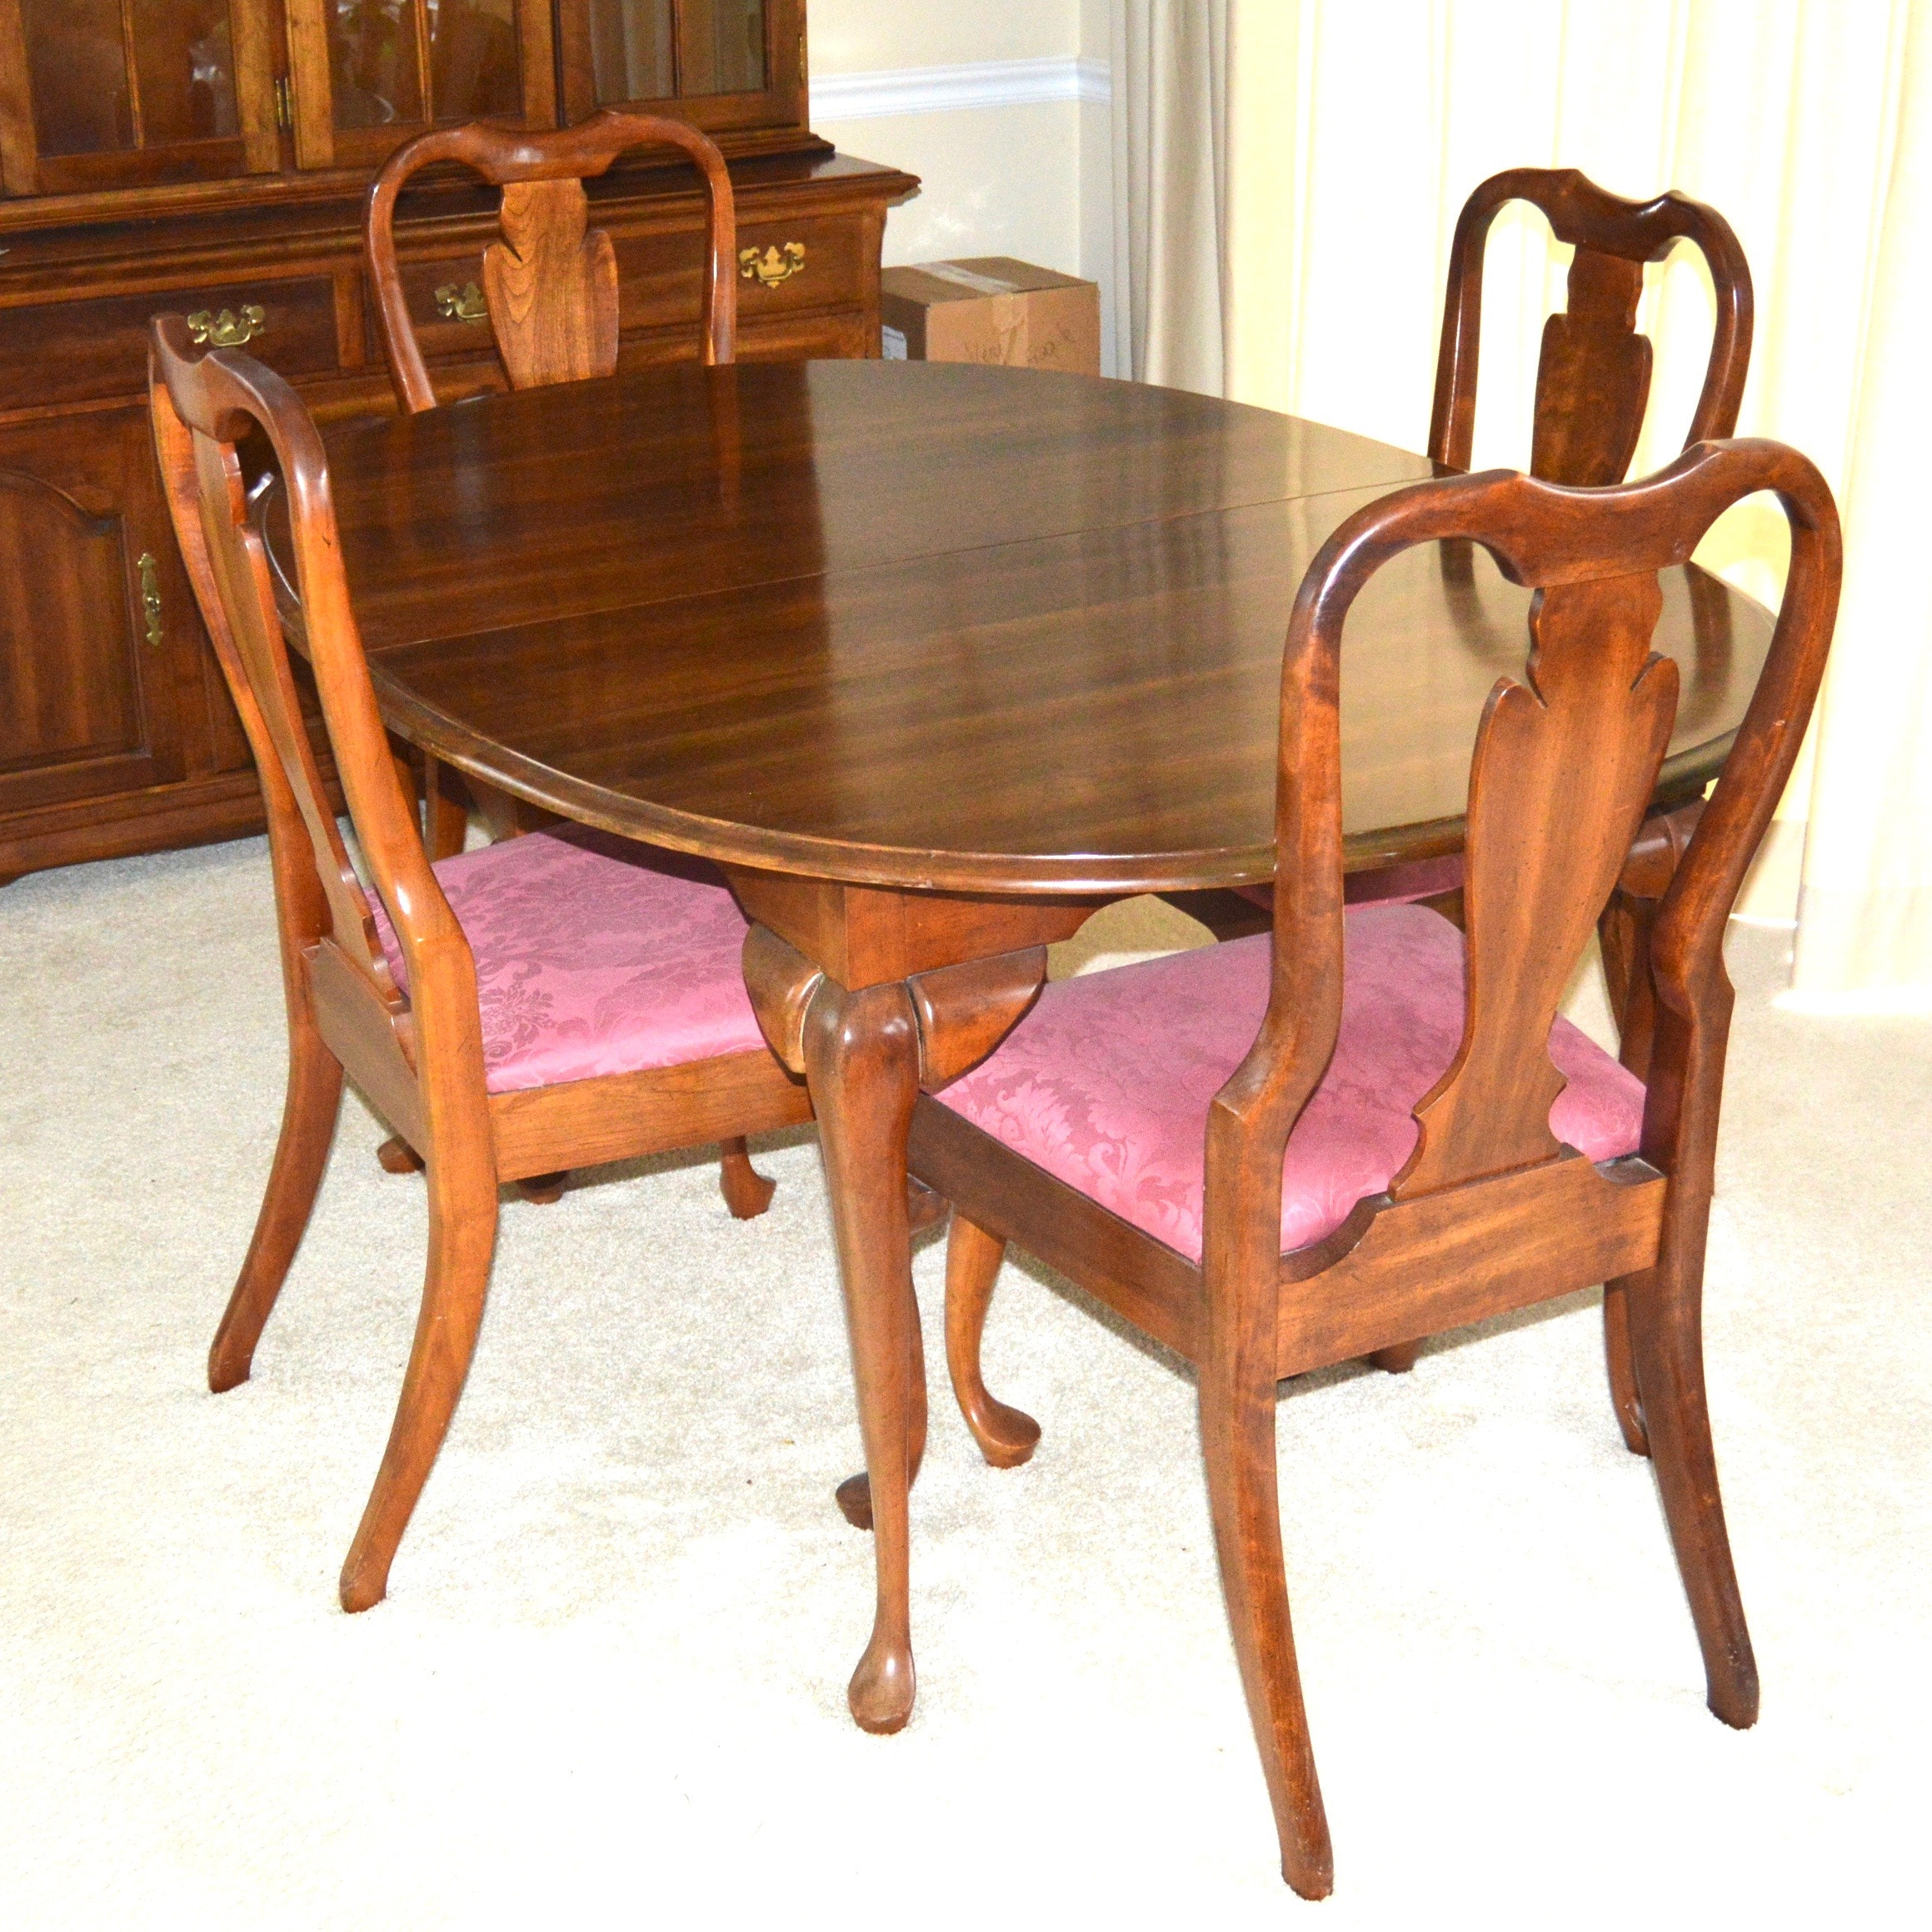 Solid Cherry Queen Anne Style Dining Table and Chairs by Cresent